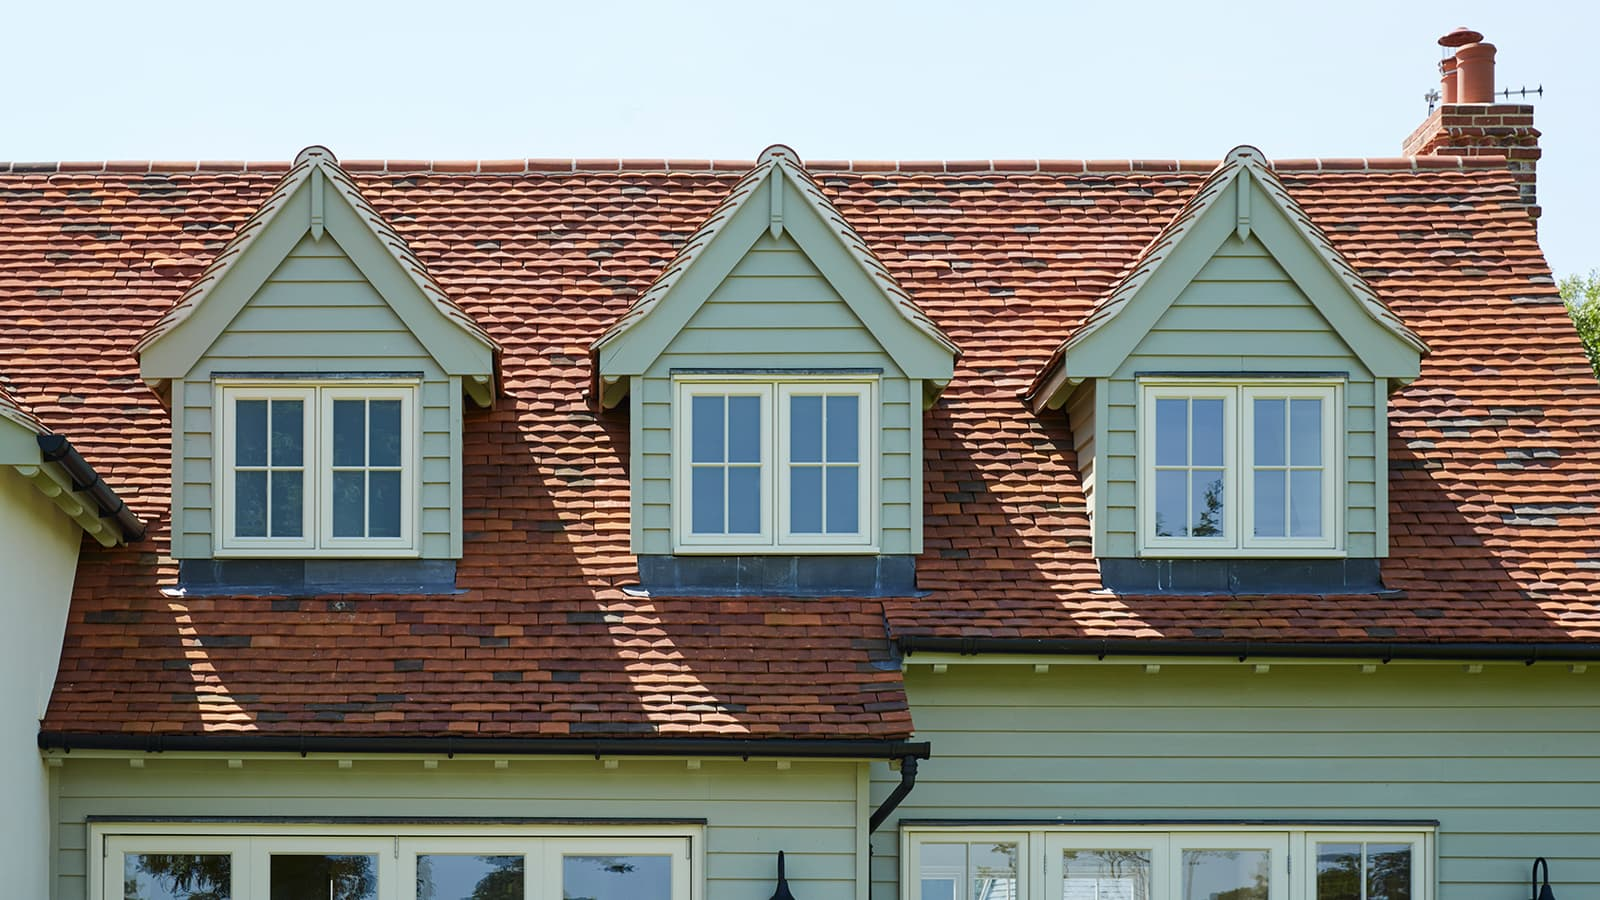 3 dormer windows